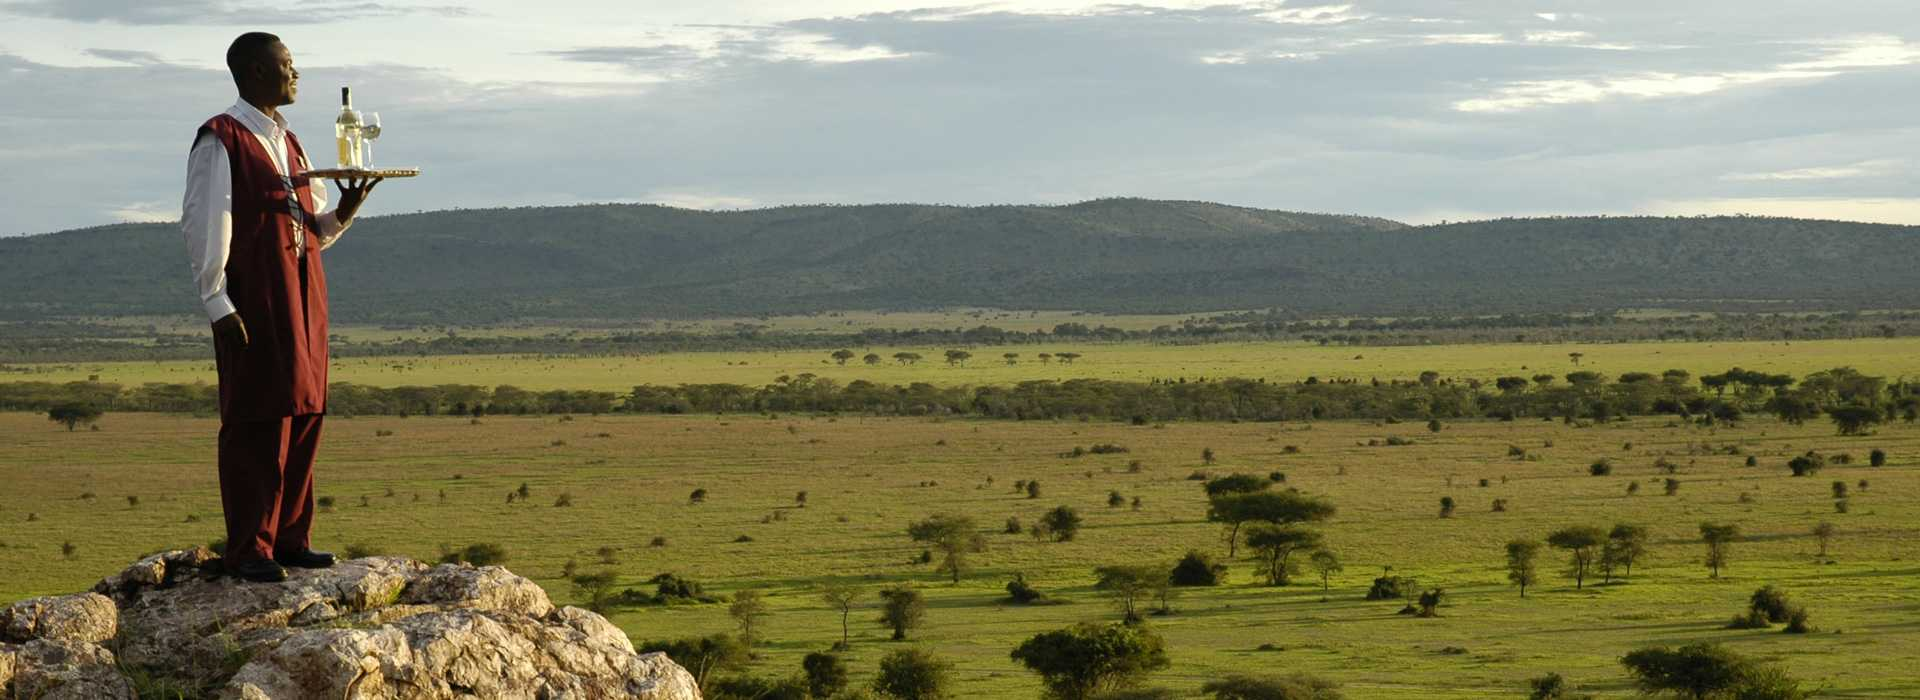 View Over The Serengeti Plains, Tanzania